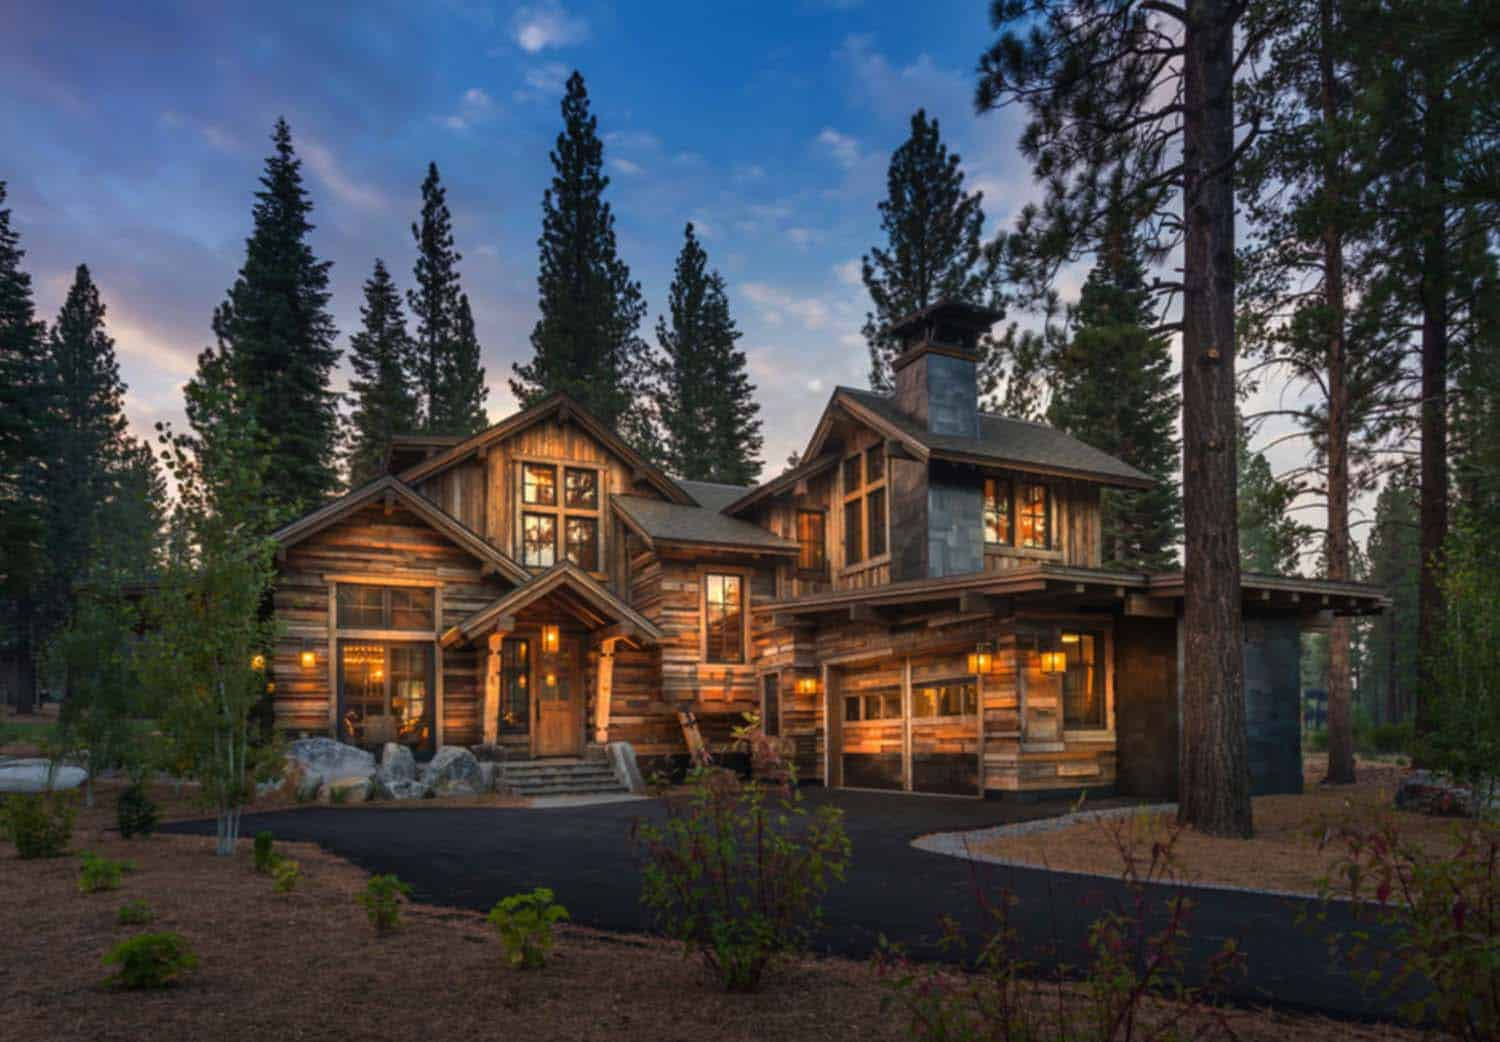 Cozy mountain style cabin getaway in martis camp california for The mountain house